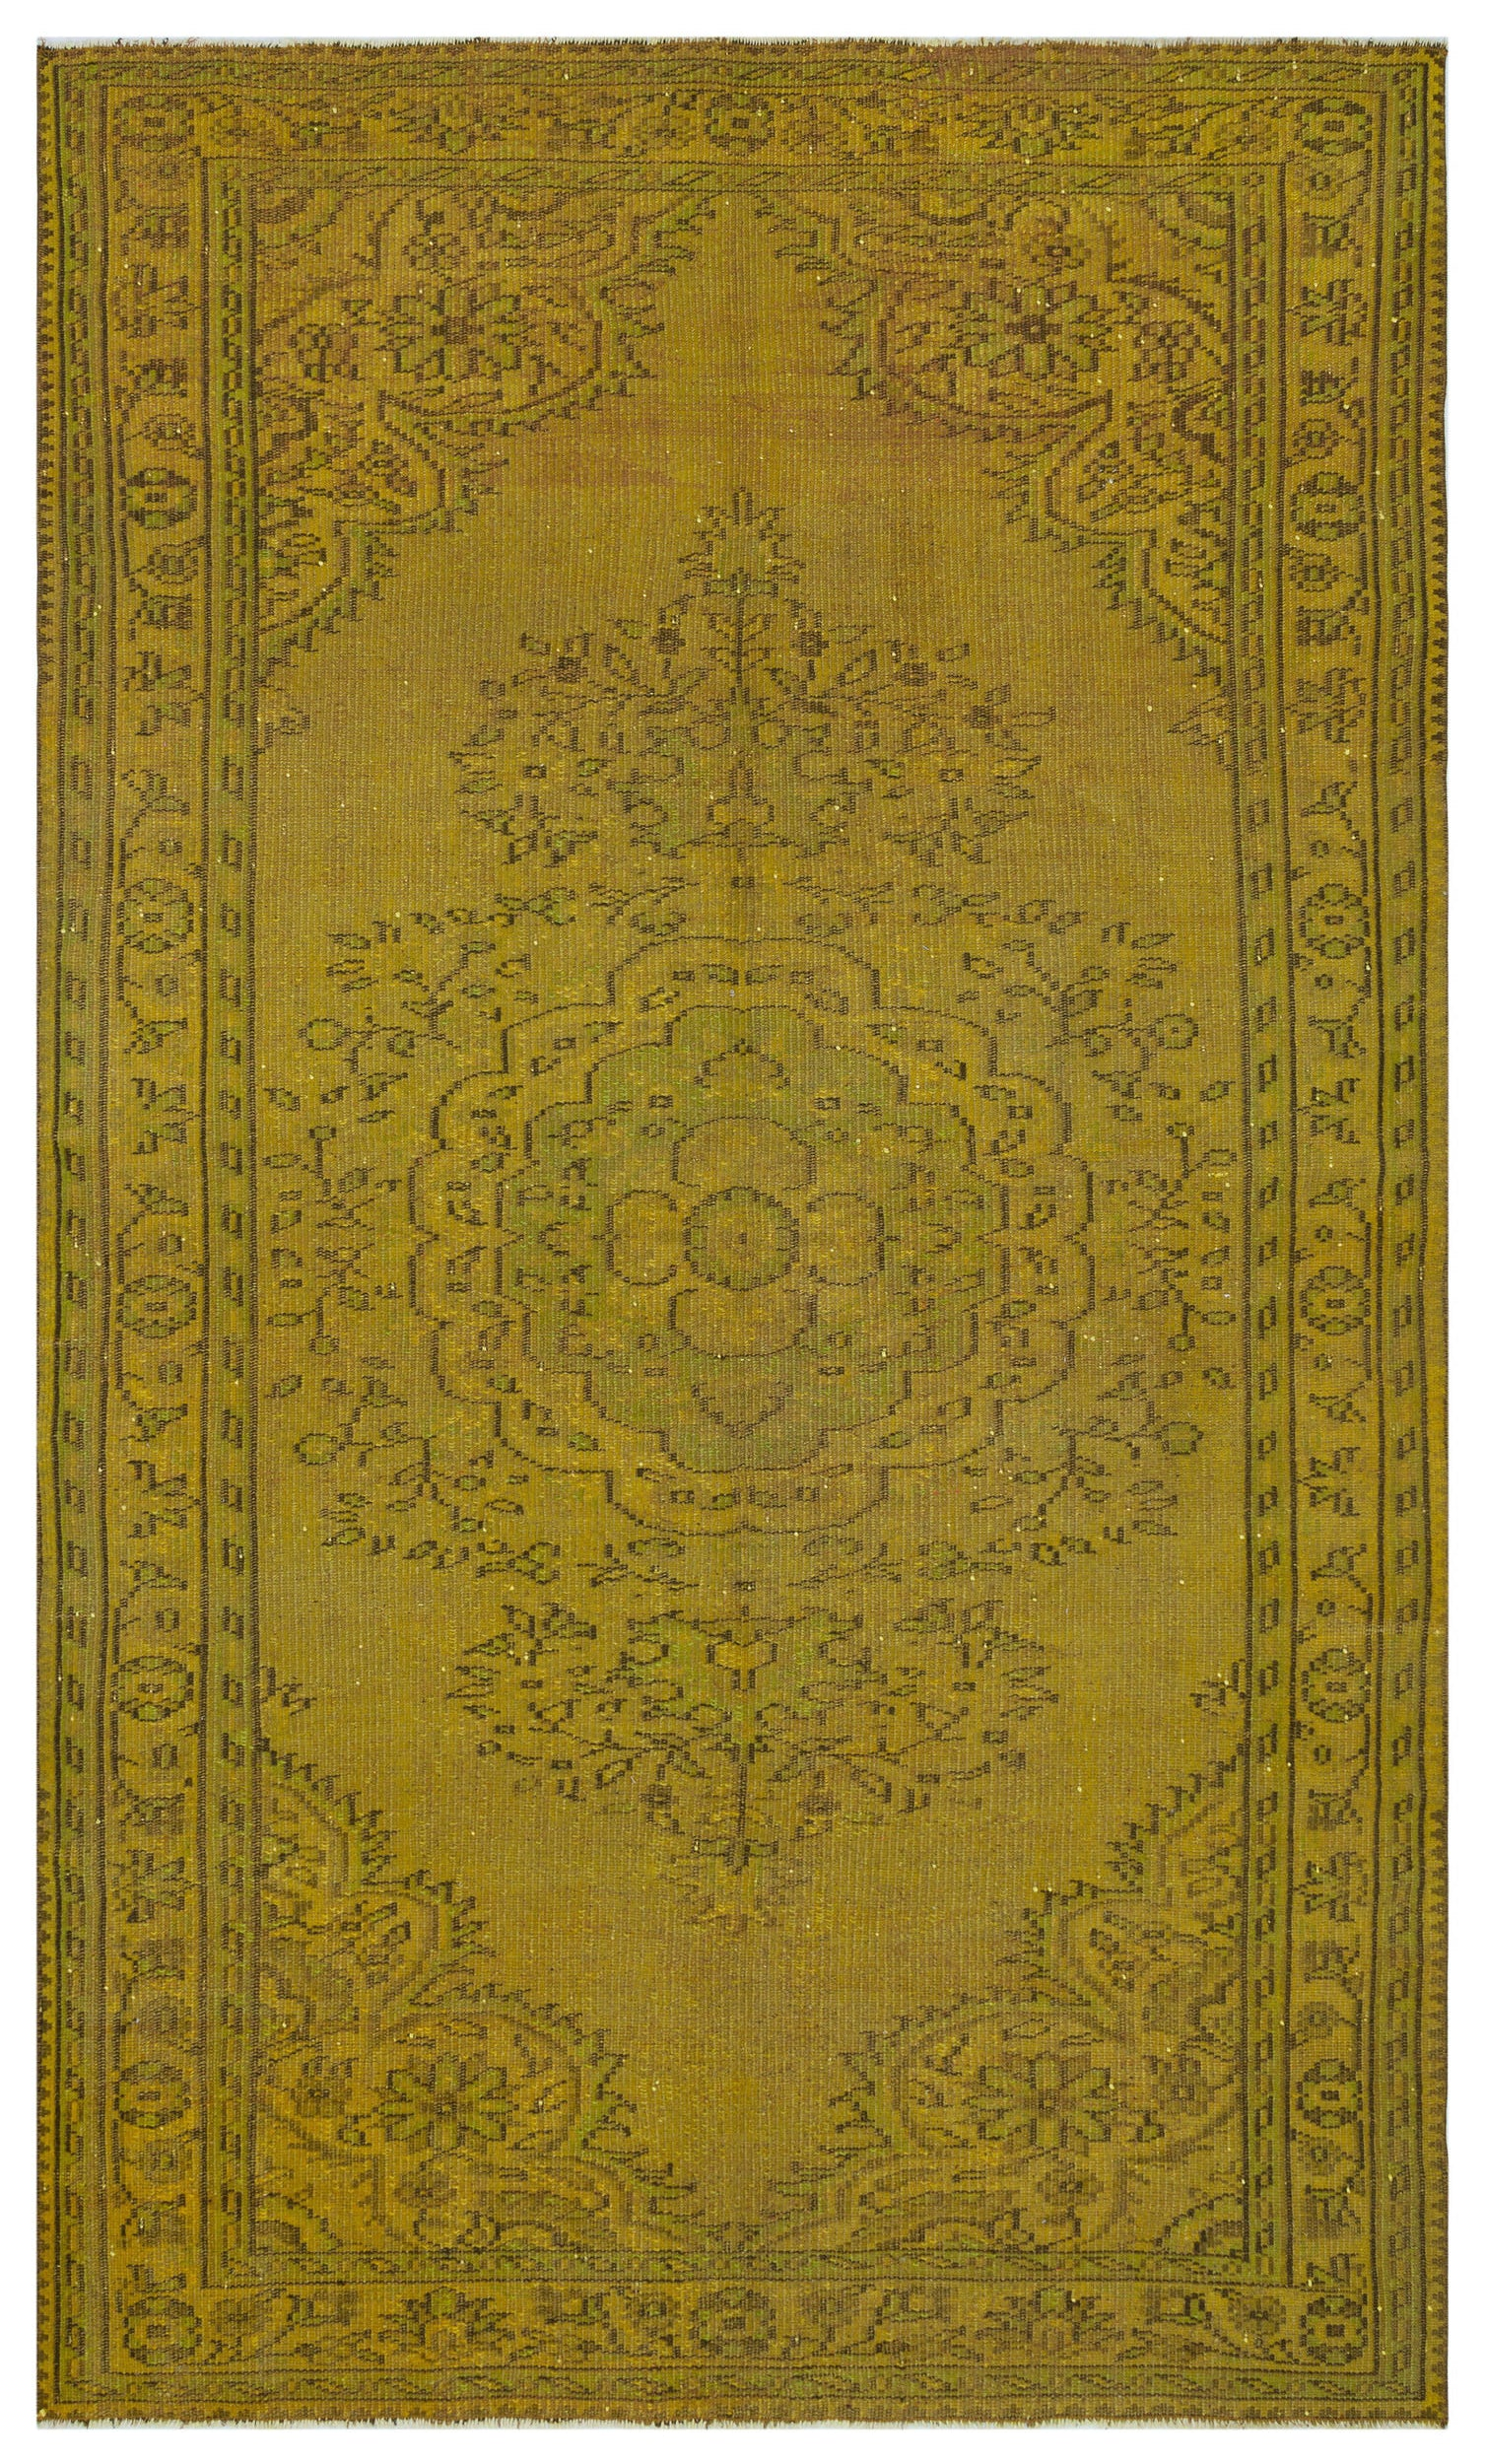 Yellow Over Dyed Vintage Rug 5'10'' x 9'5'' ft 177 x 288 cm